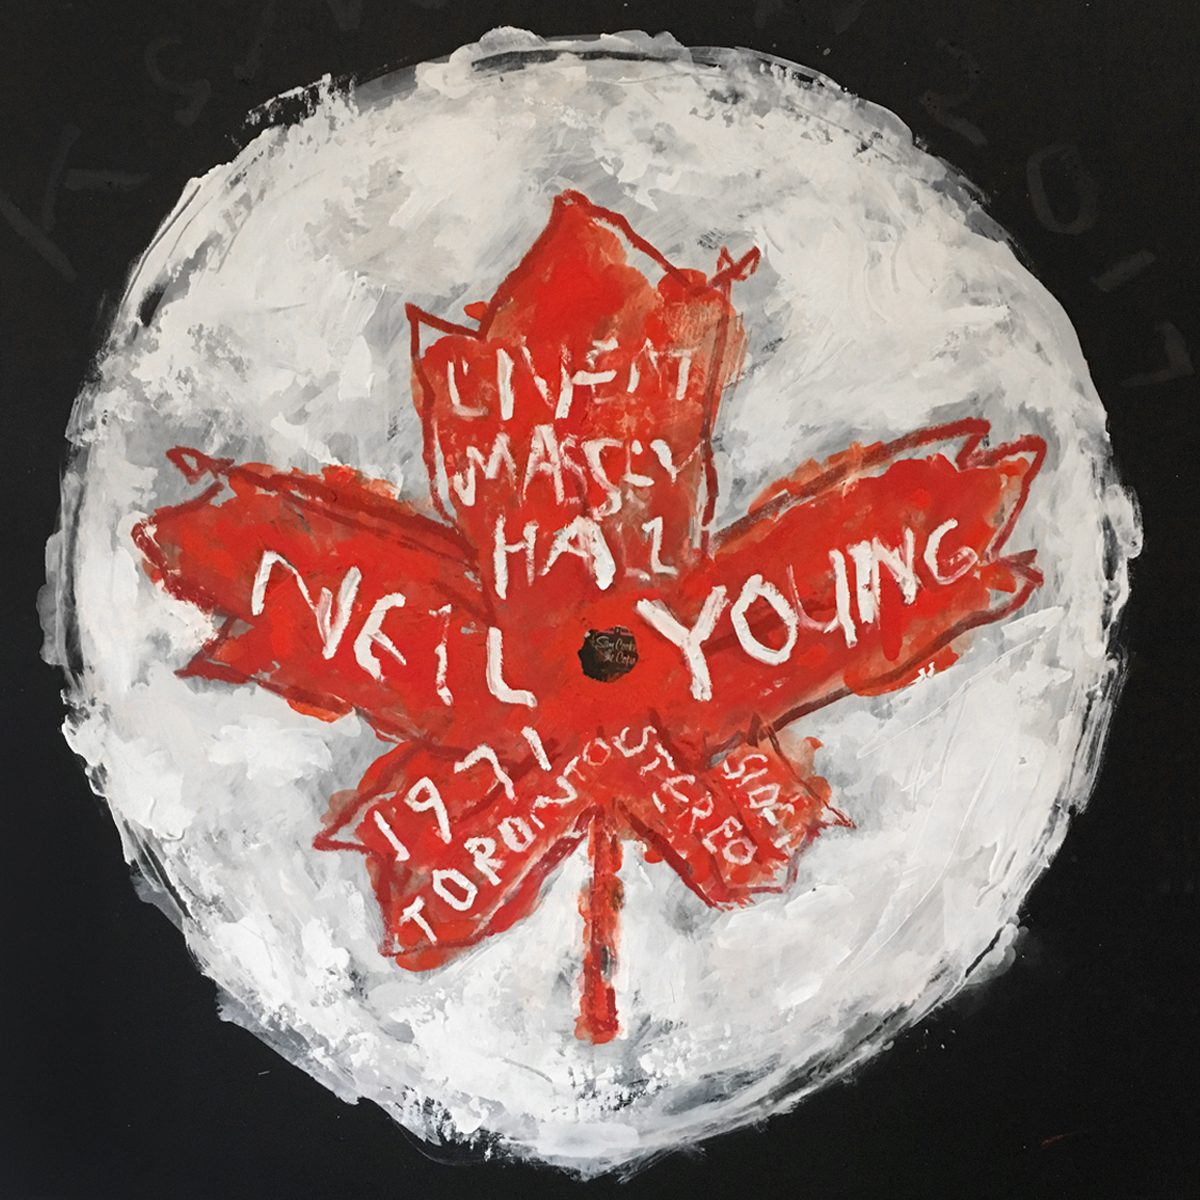 Neil Young / Live at Massey Hall